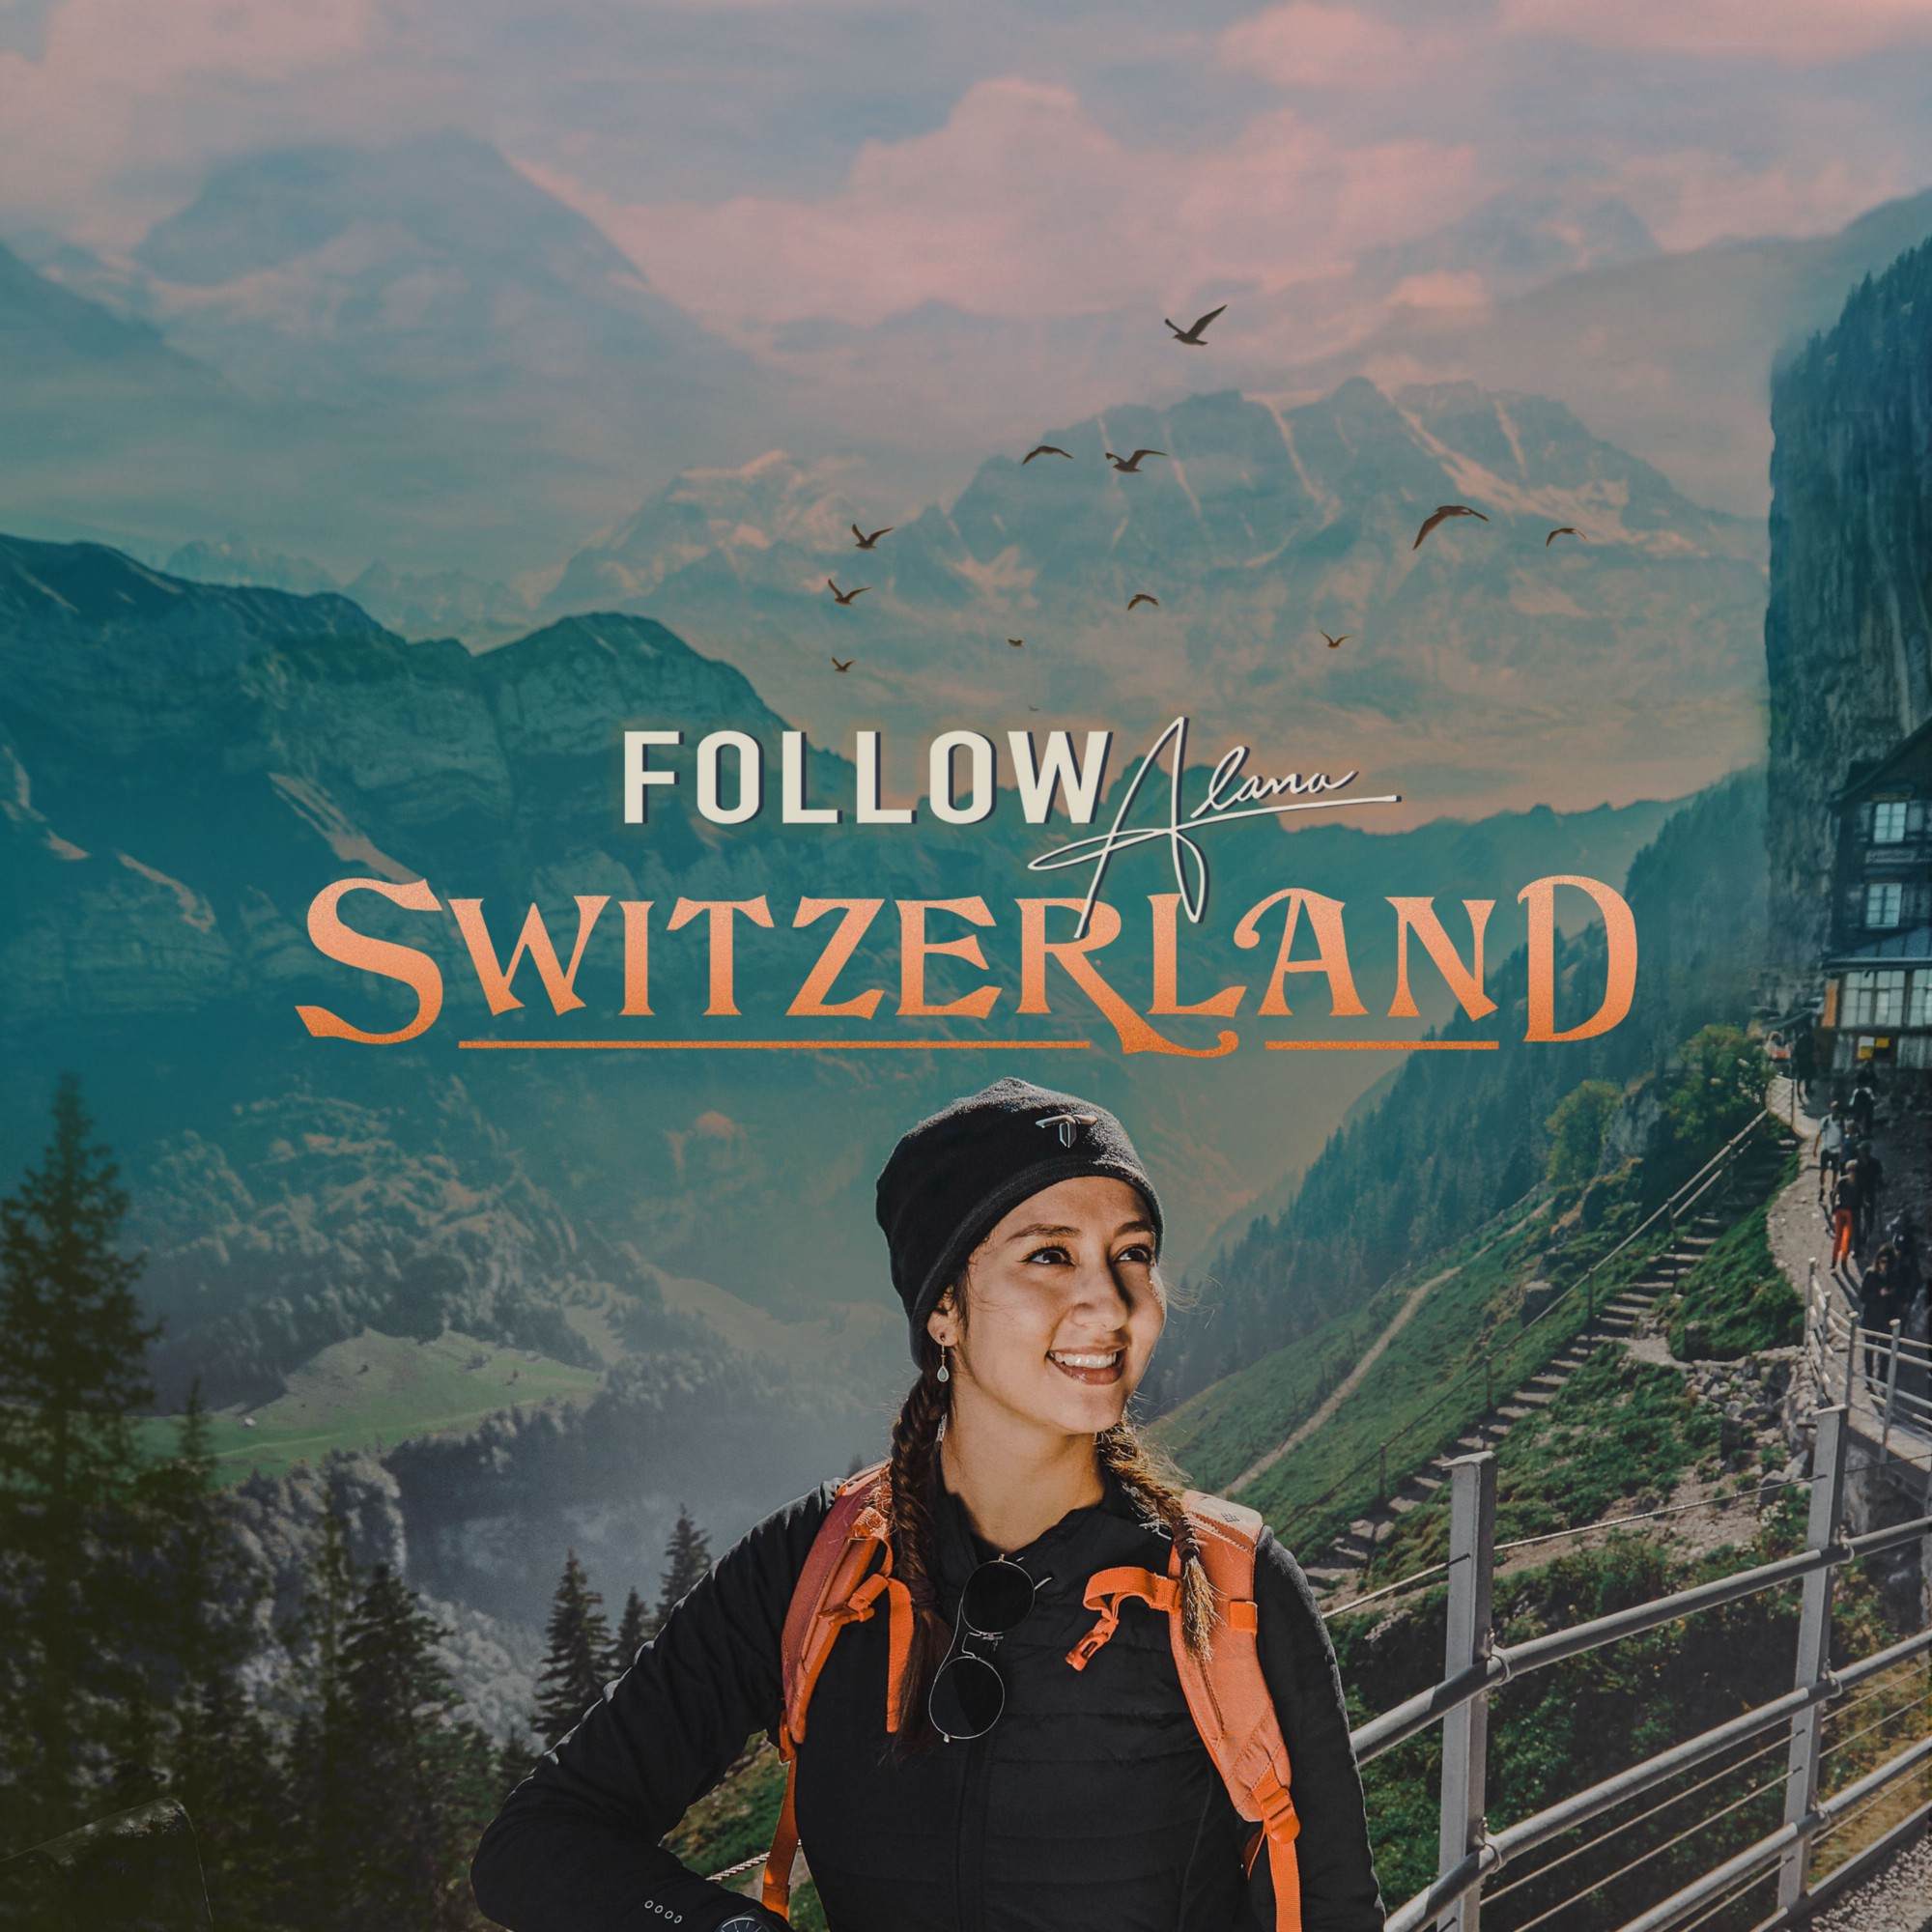 """Alana, wearing hiking gear, with her hair in plaits, is smiling, standing in front of a beautiful mountain scape. The text reads """"Follow Alana Switzerland."""""""